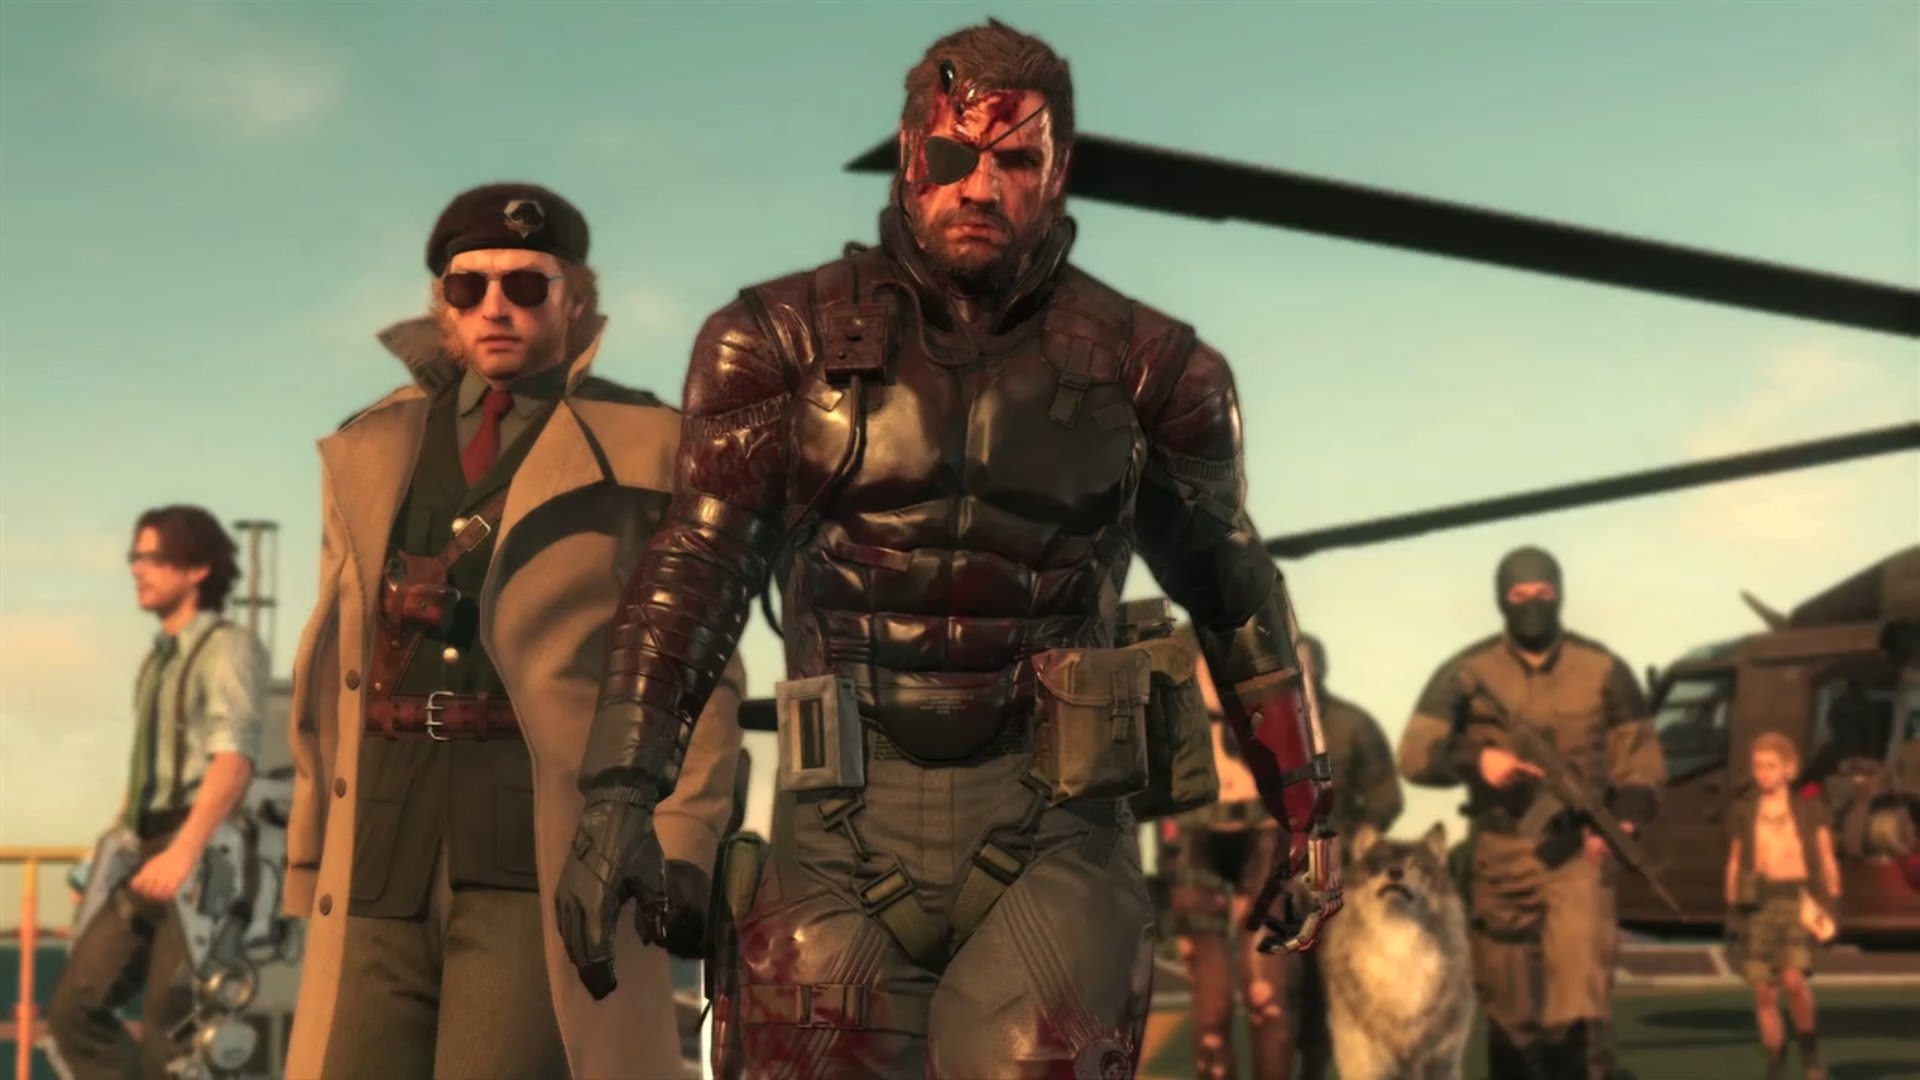 Metal Gear Solid 5 Clipart 1920x1080.